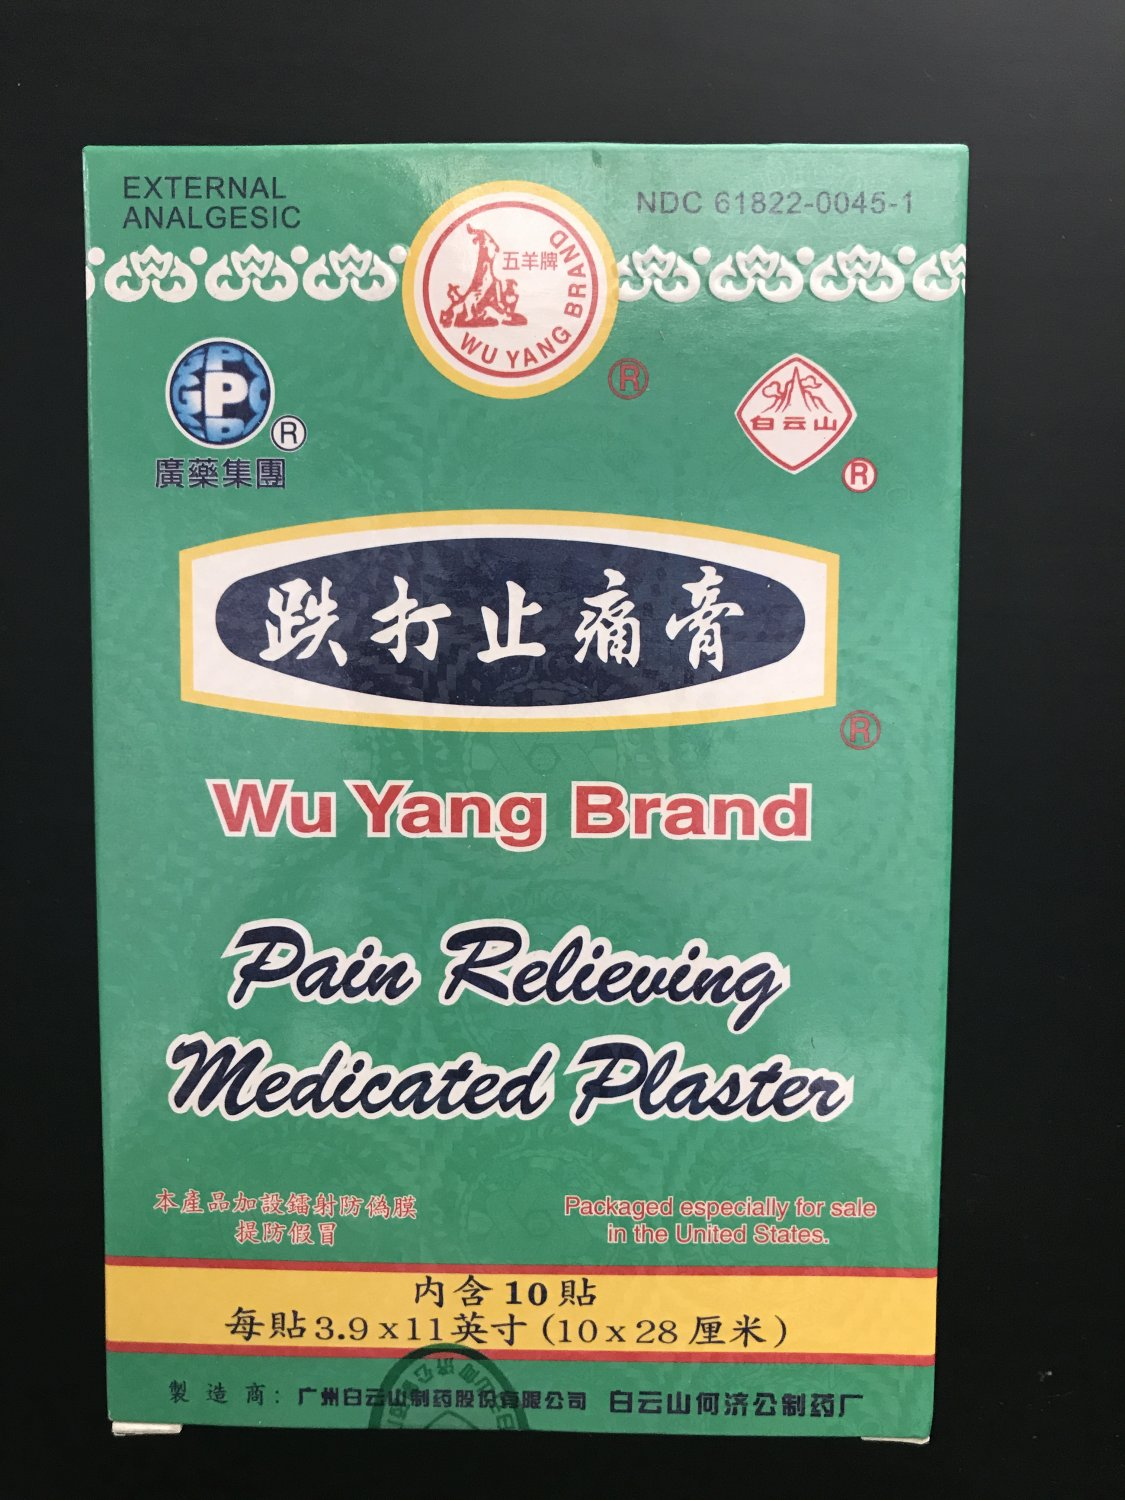 Wu Yang Brand Pain Relieving Medicated Plaster 50 Plasters (5 Boxes)